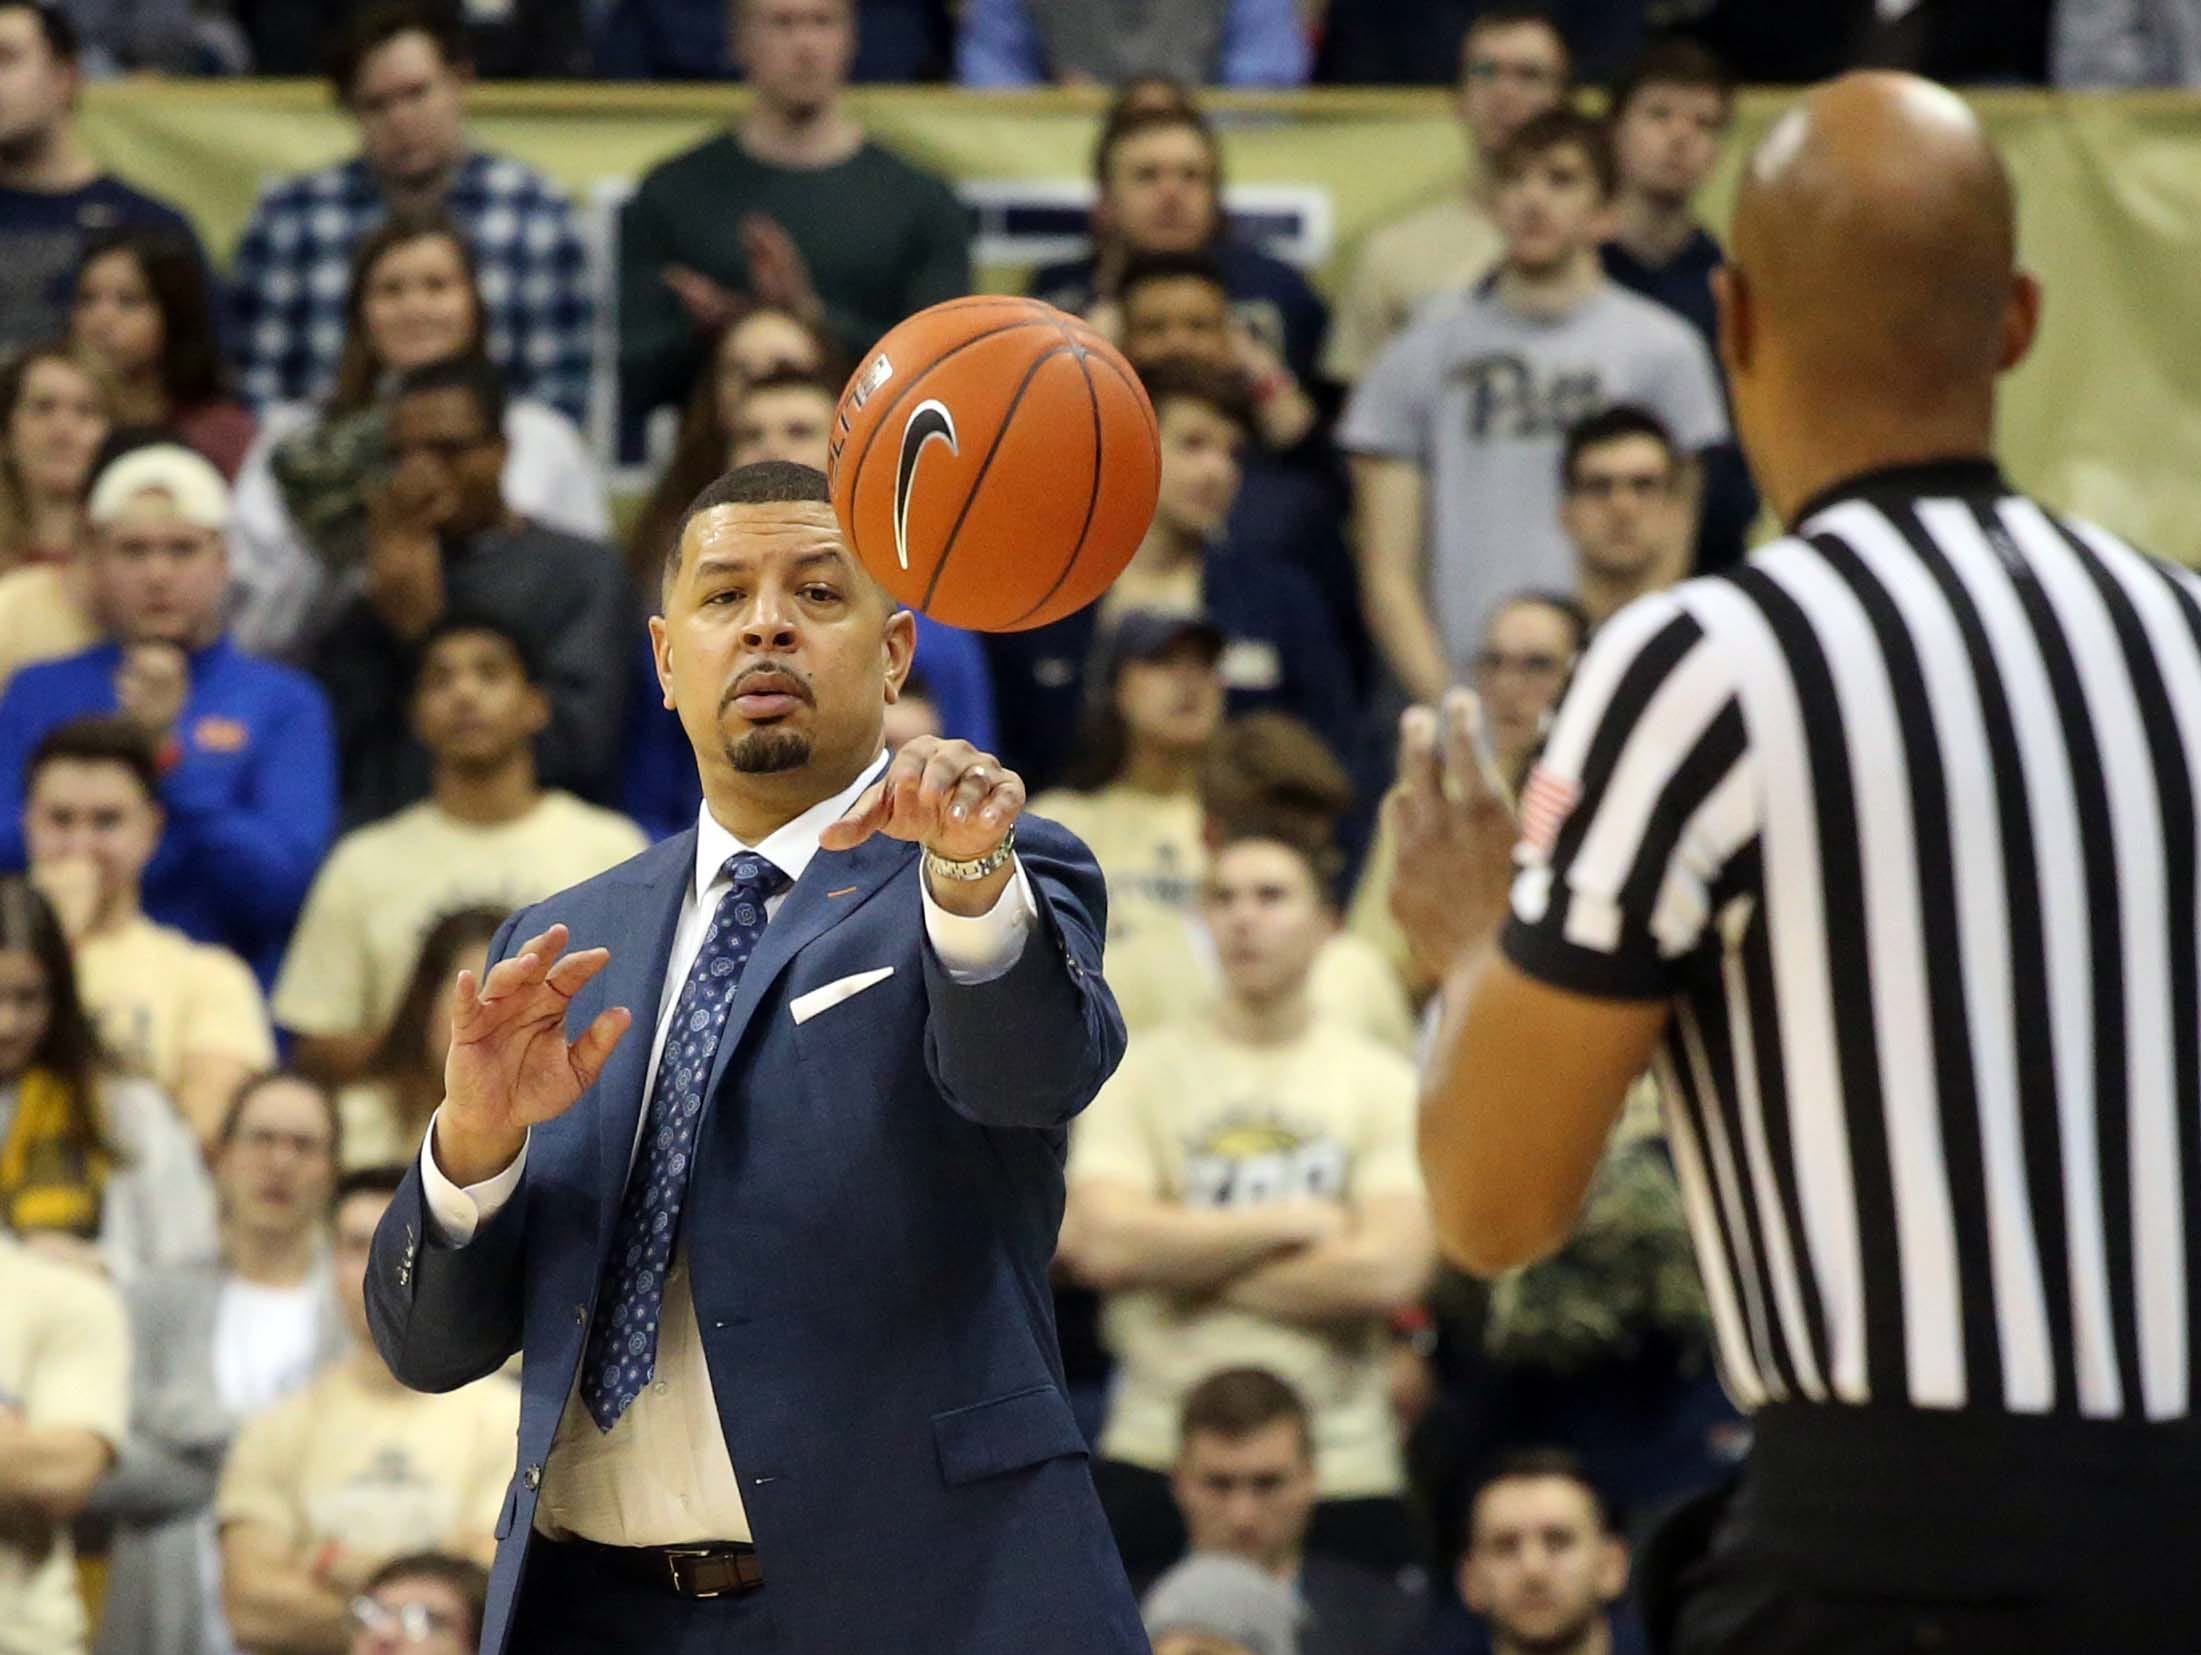 Jan 14, 2019; Pittsburgh, PA, USA; Pittsburgh Panthers head coach Jeff Capel  returns loose ball to the official against the Florida State Seminoles during the second half at the Petersen Events Center. Pittsburgh won 75-62. Mandatory Credit: Charles LeClaire-USA TODAY Sports